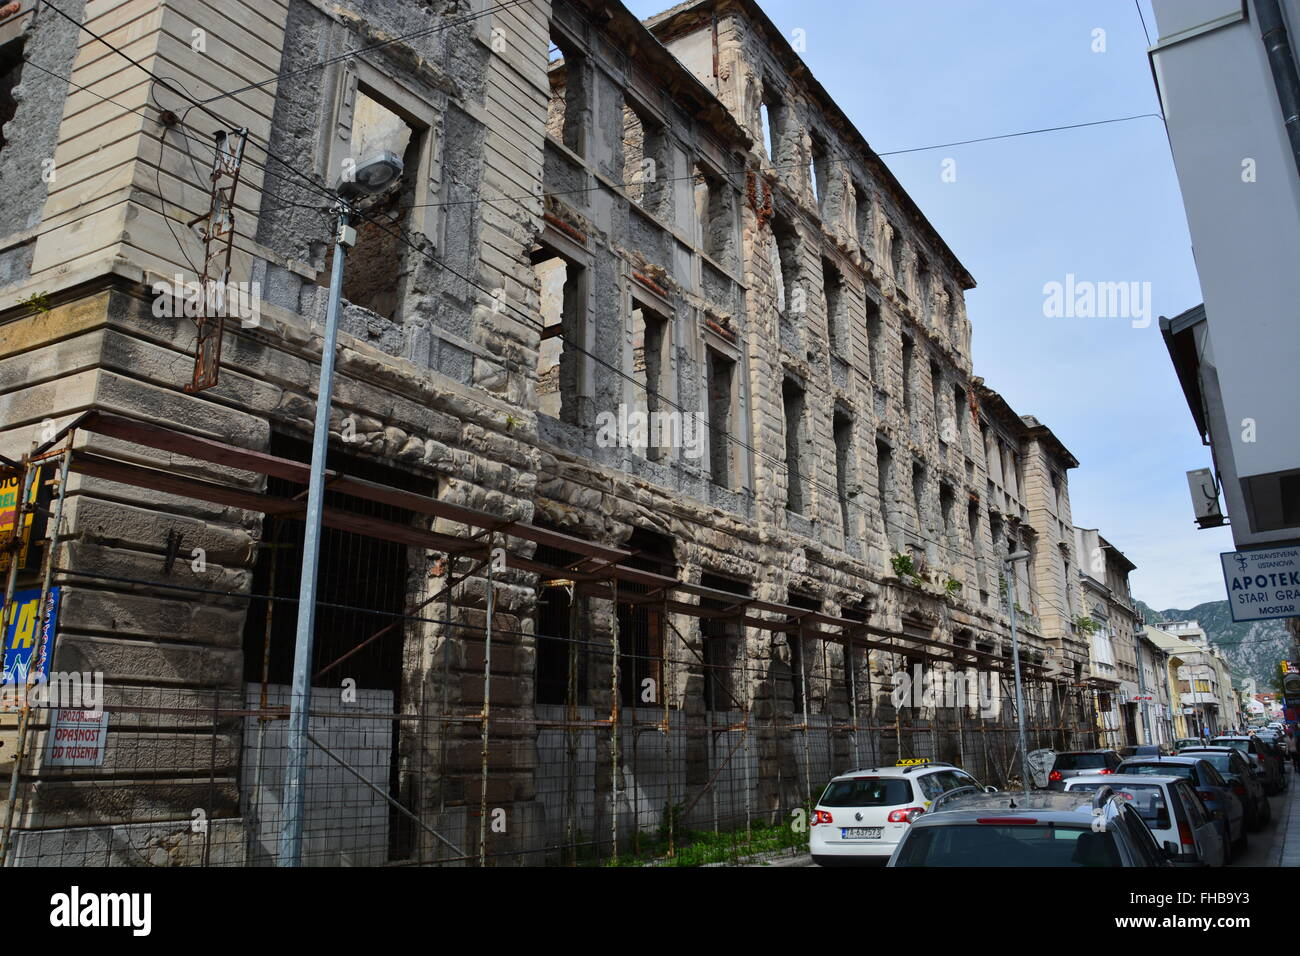 A building destroyed during the Bosnian War in Mostar. - Stock Image